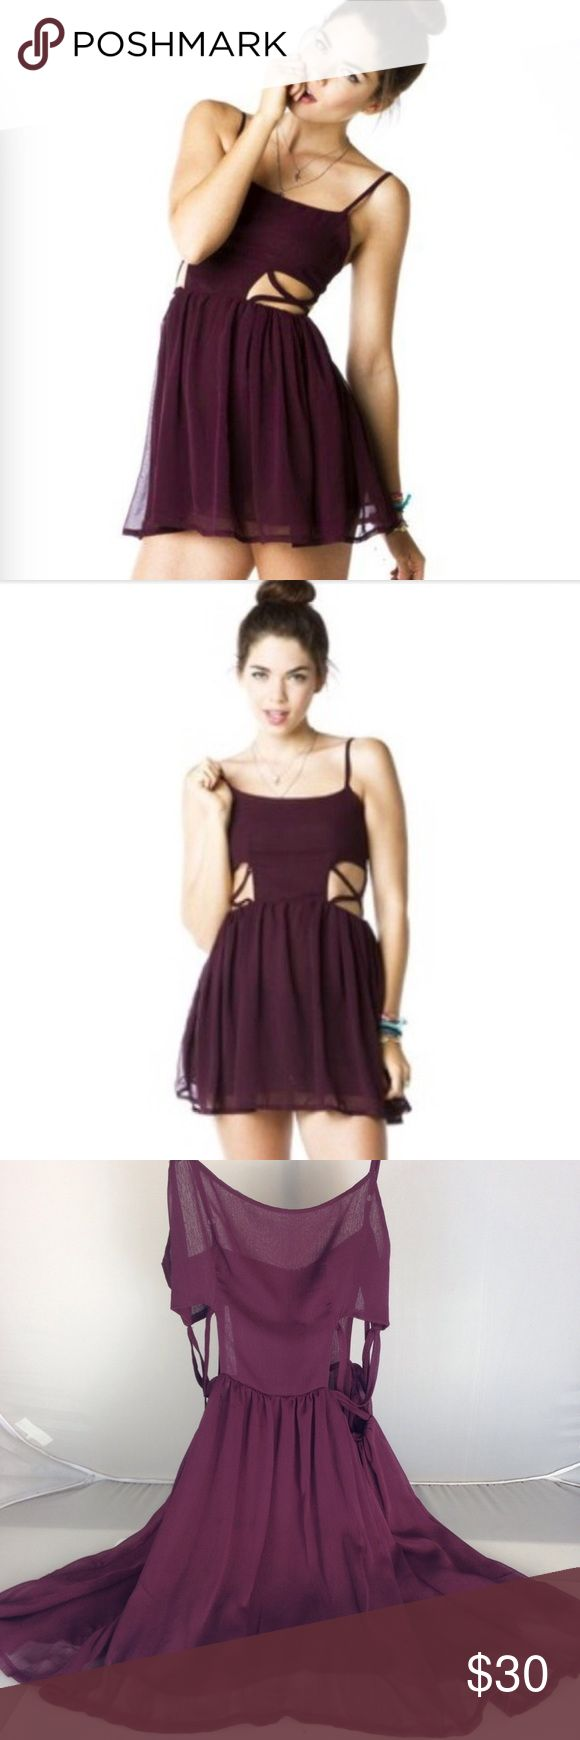 Brandy Melville Maroon Cutout Pauline Dress ✨ Bundle & Save ✨ Great Condition ✨ One Size, But would fit an x-small up to a Medium with a smaller bust ✨ Brandy Melville Dresses Mini